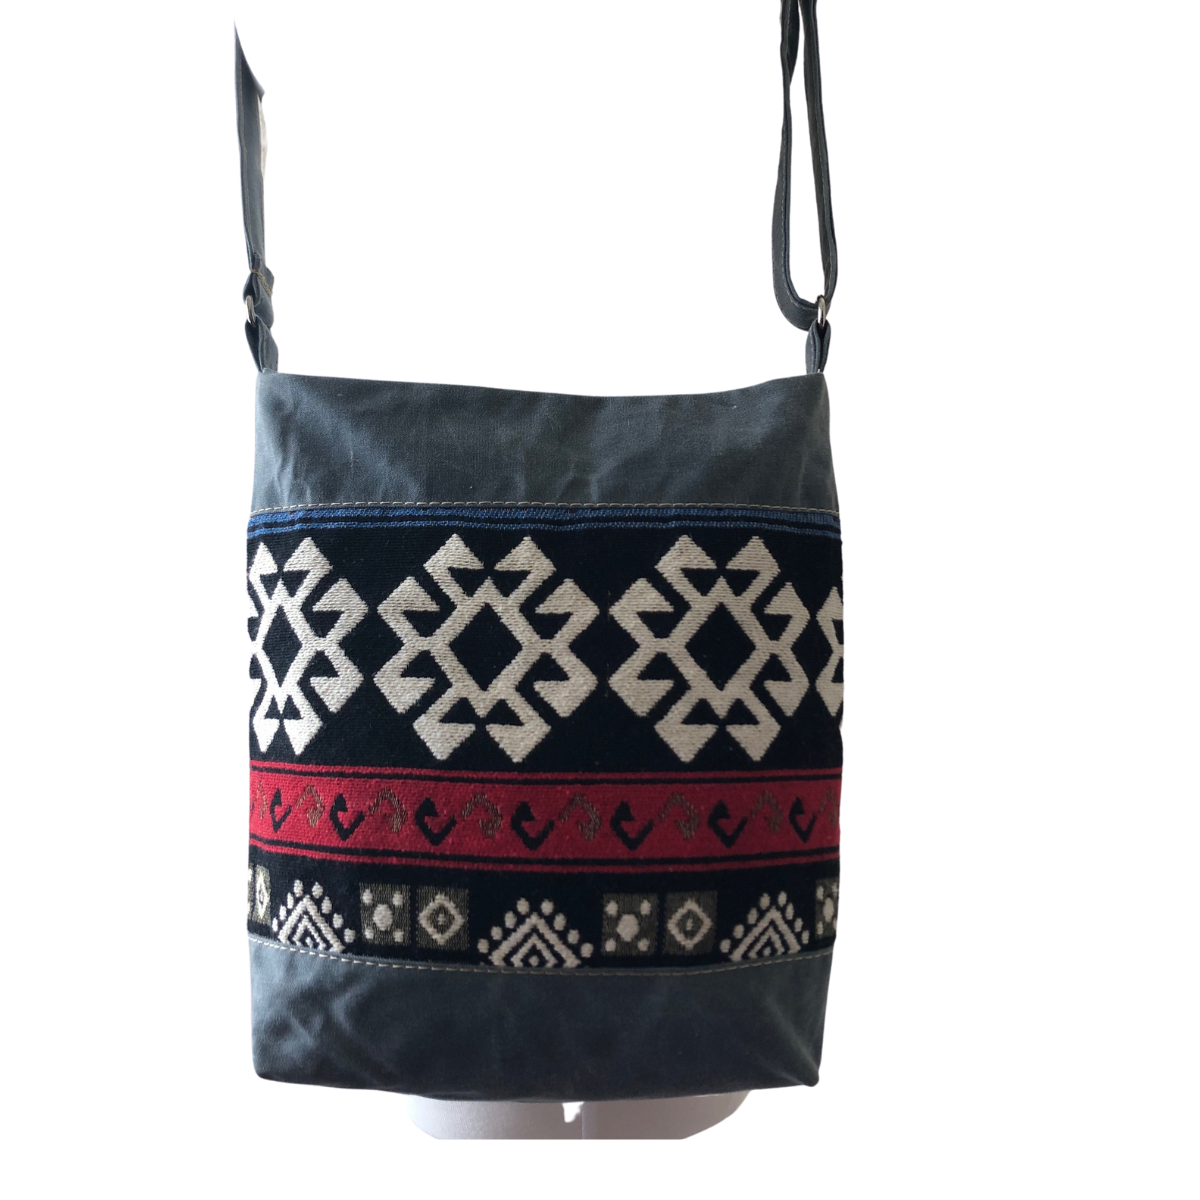 Handwoven Crossbody Purse - Grey, Red, Black and White